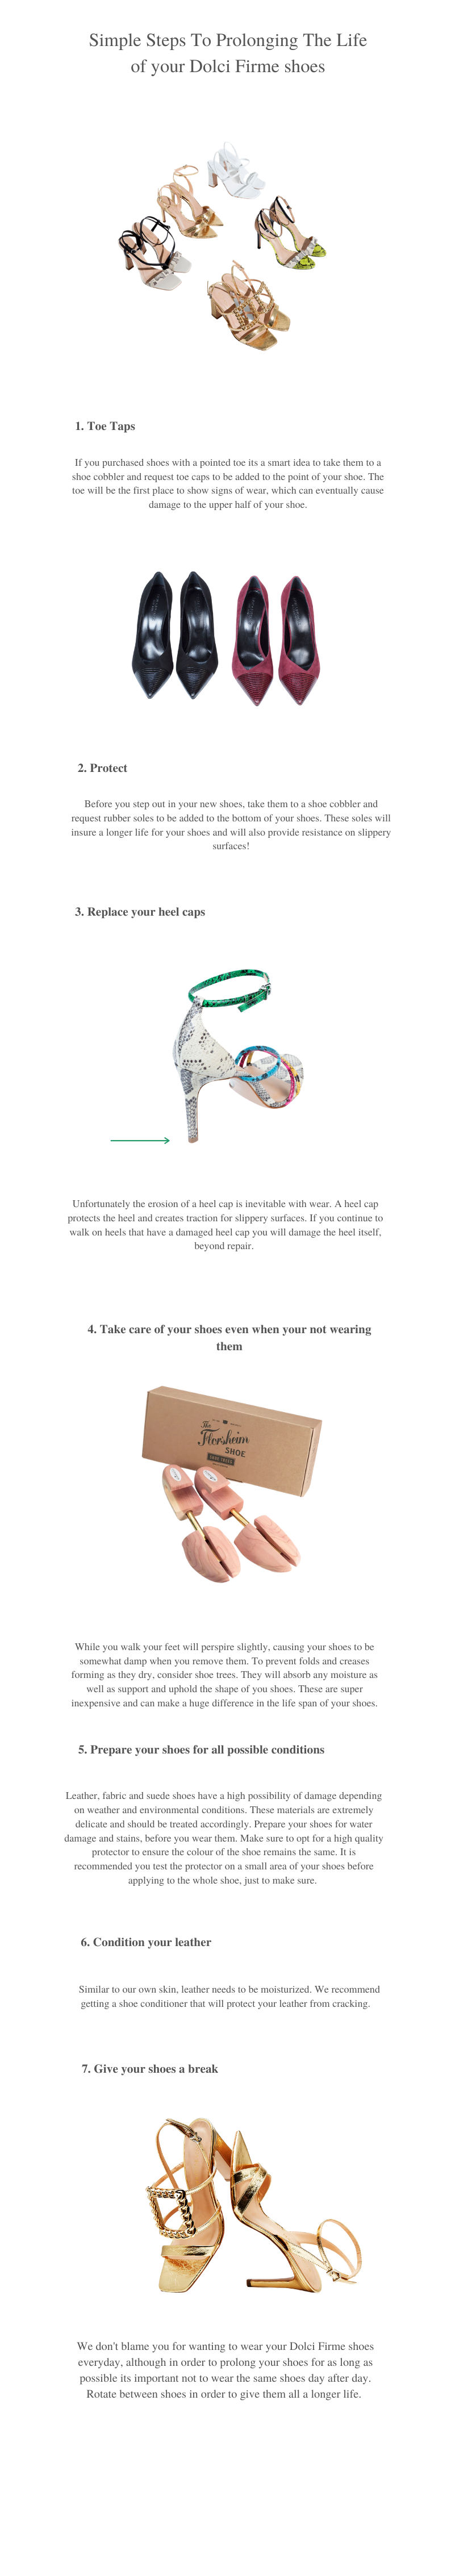 7-simple-steps-to-prolonging-the-life-of-your-dolci-firme-shoes-3-.png